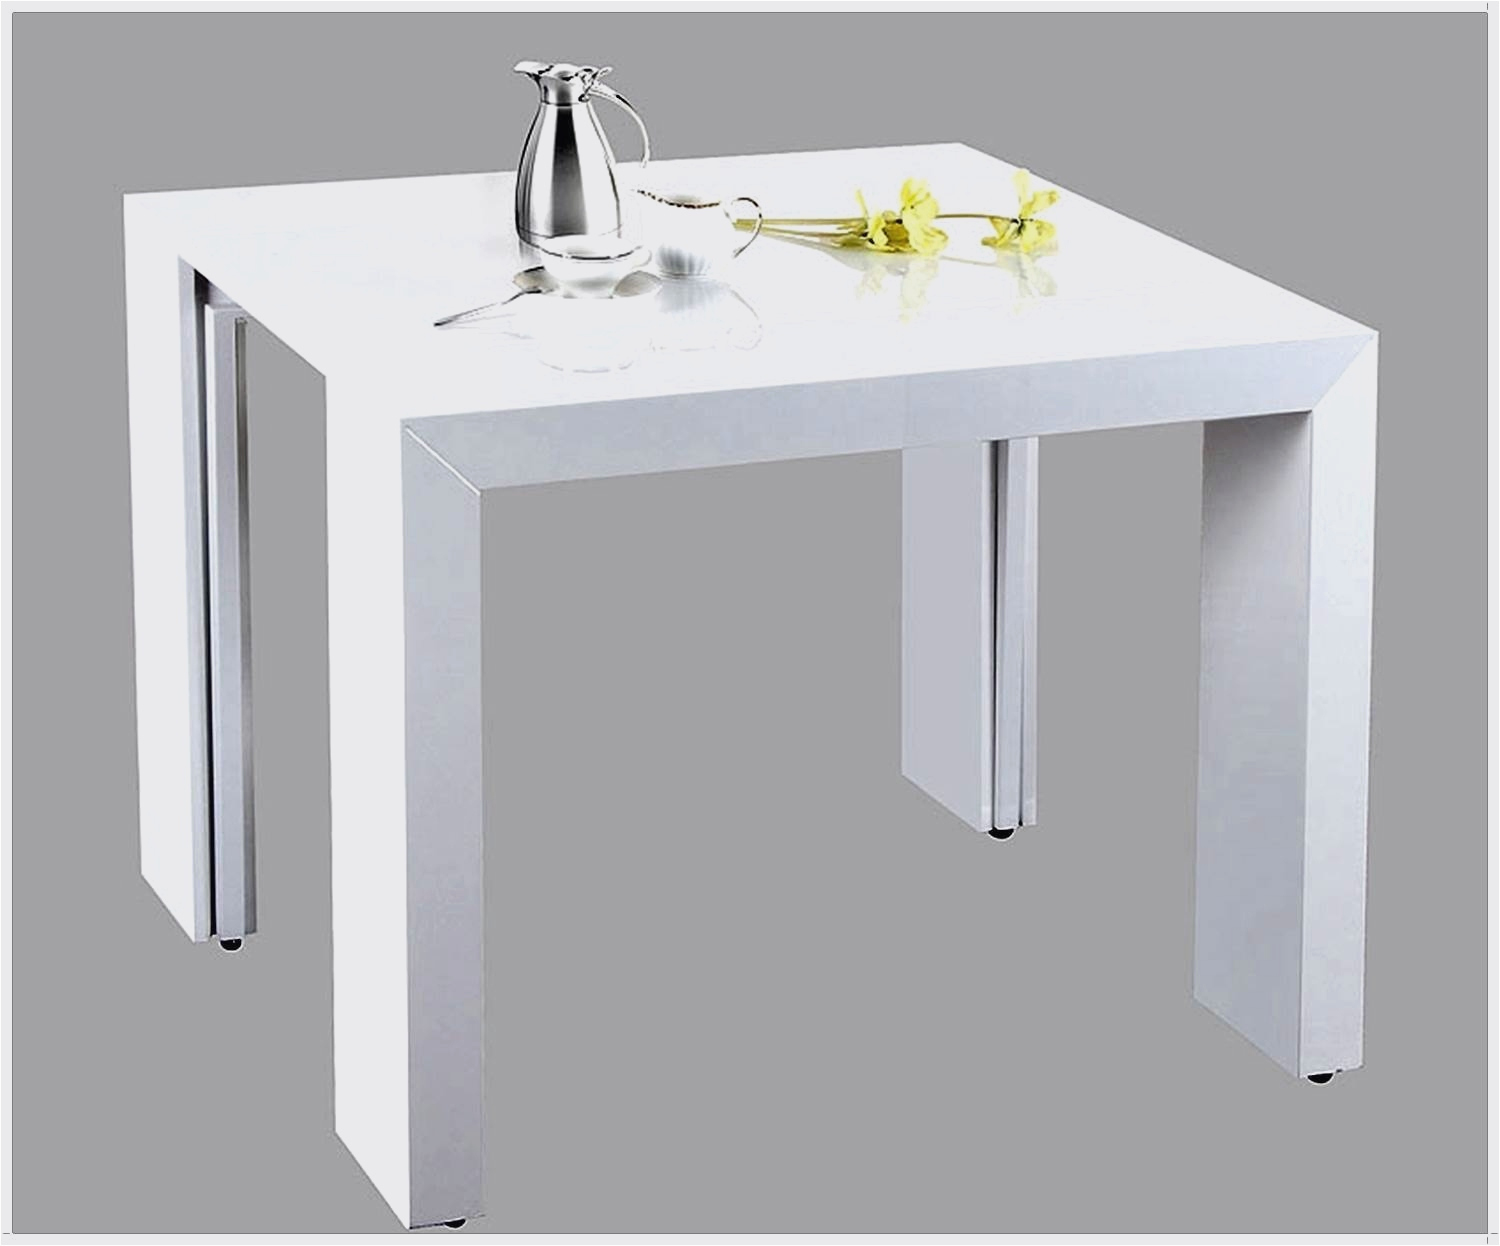 Table Console Extensible Fly – Gamboahinestrosa intérieur Table Salle A Manger Extensible Fly